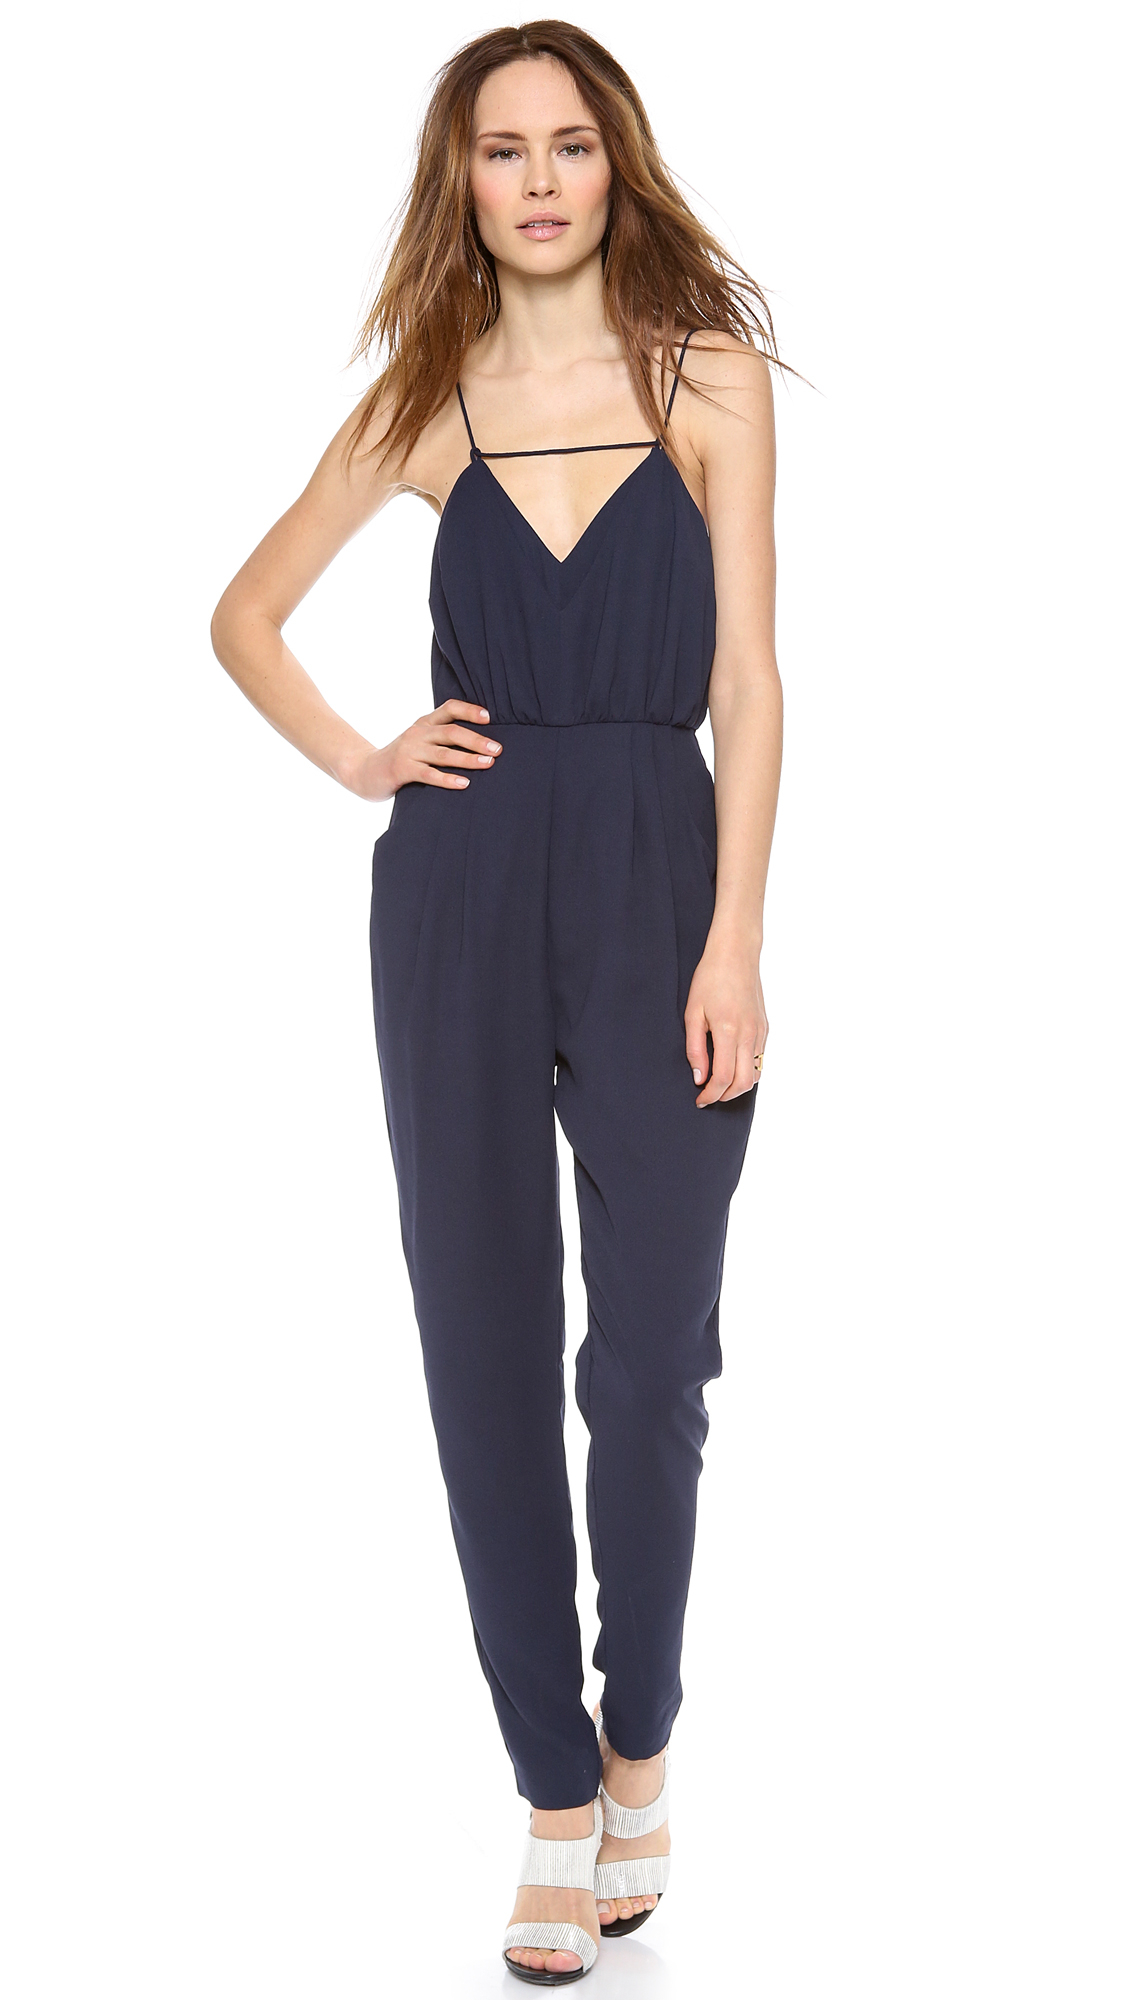 ff0b75f3ff61 Lyst - Finders Keepers The Someday Jumpsuit - Dark Navy in Blue